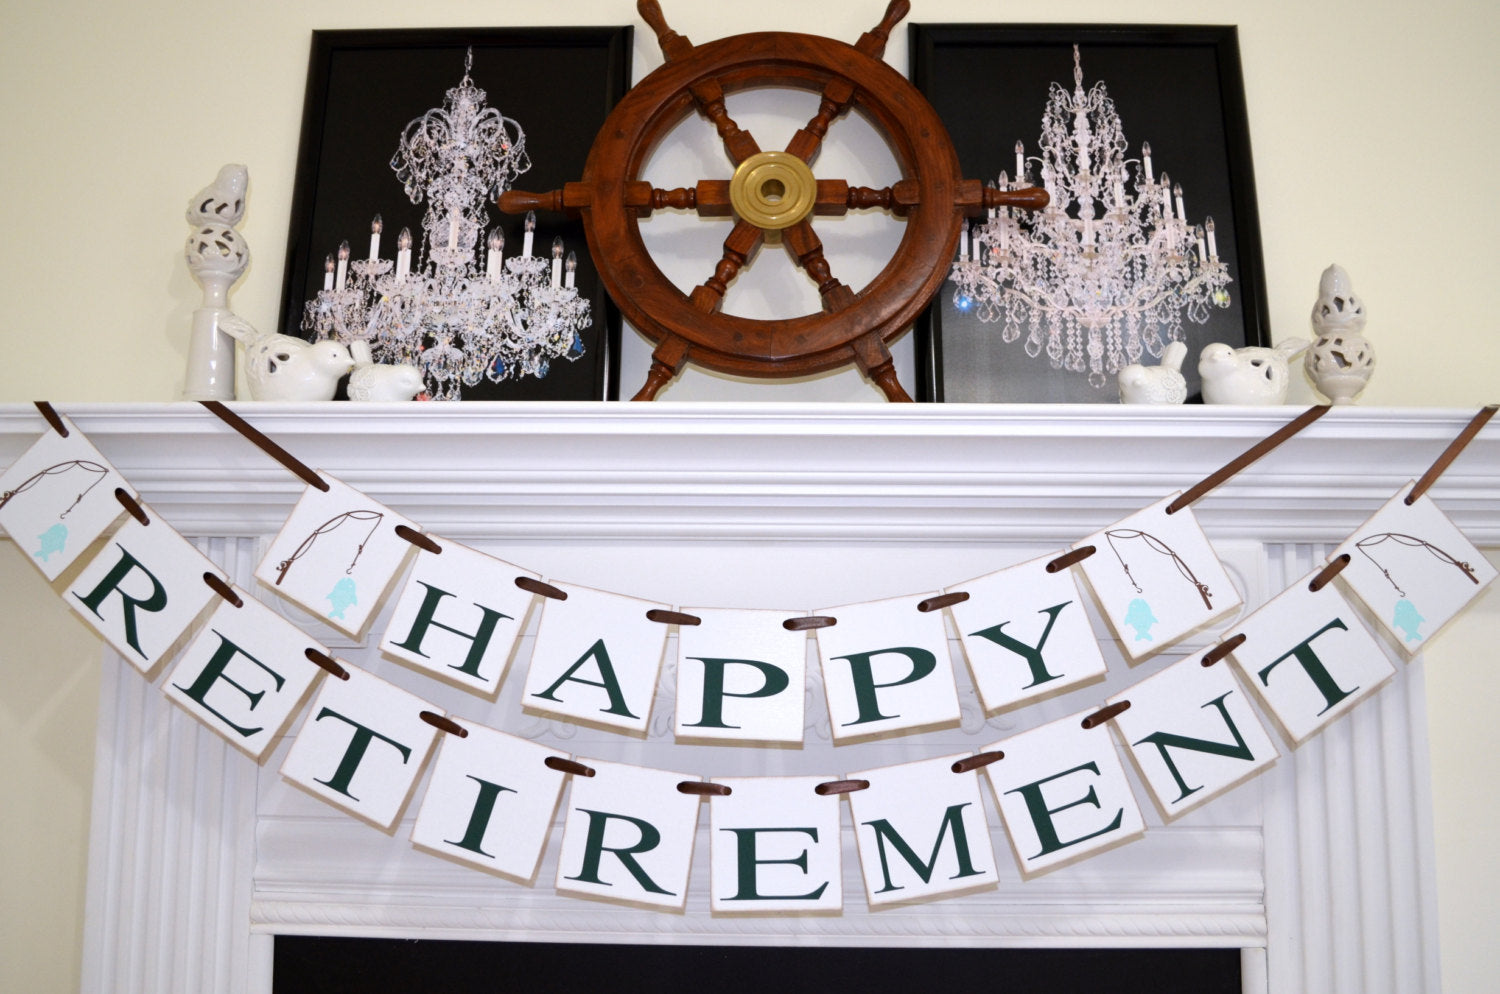 lovely com for decor retirement decorations hospicehelpnow table party from source elegant sourcebooksandparty of